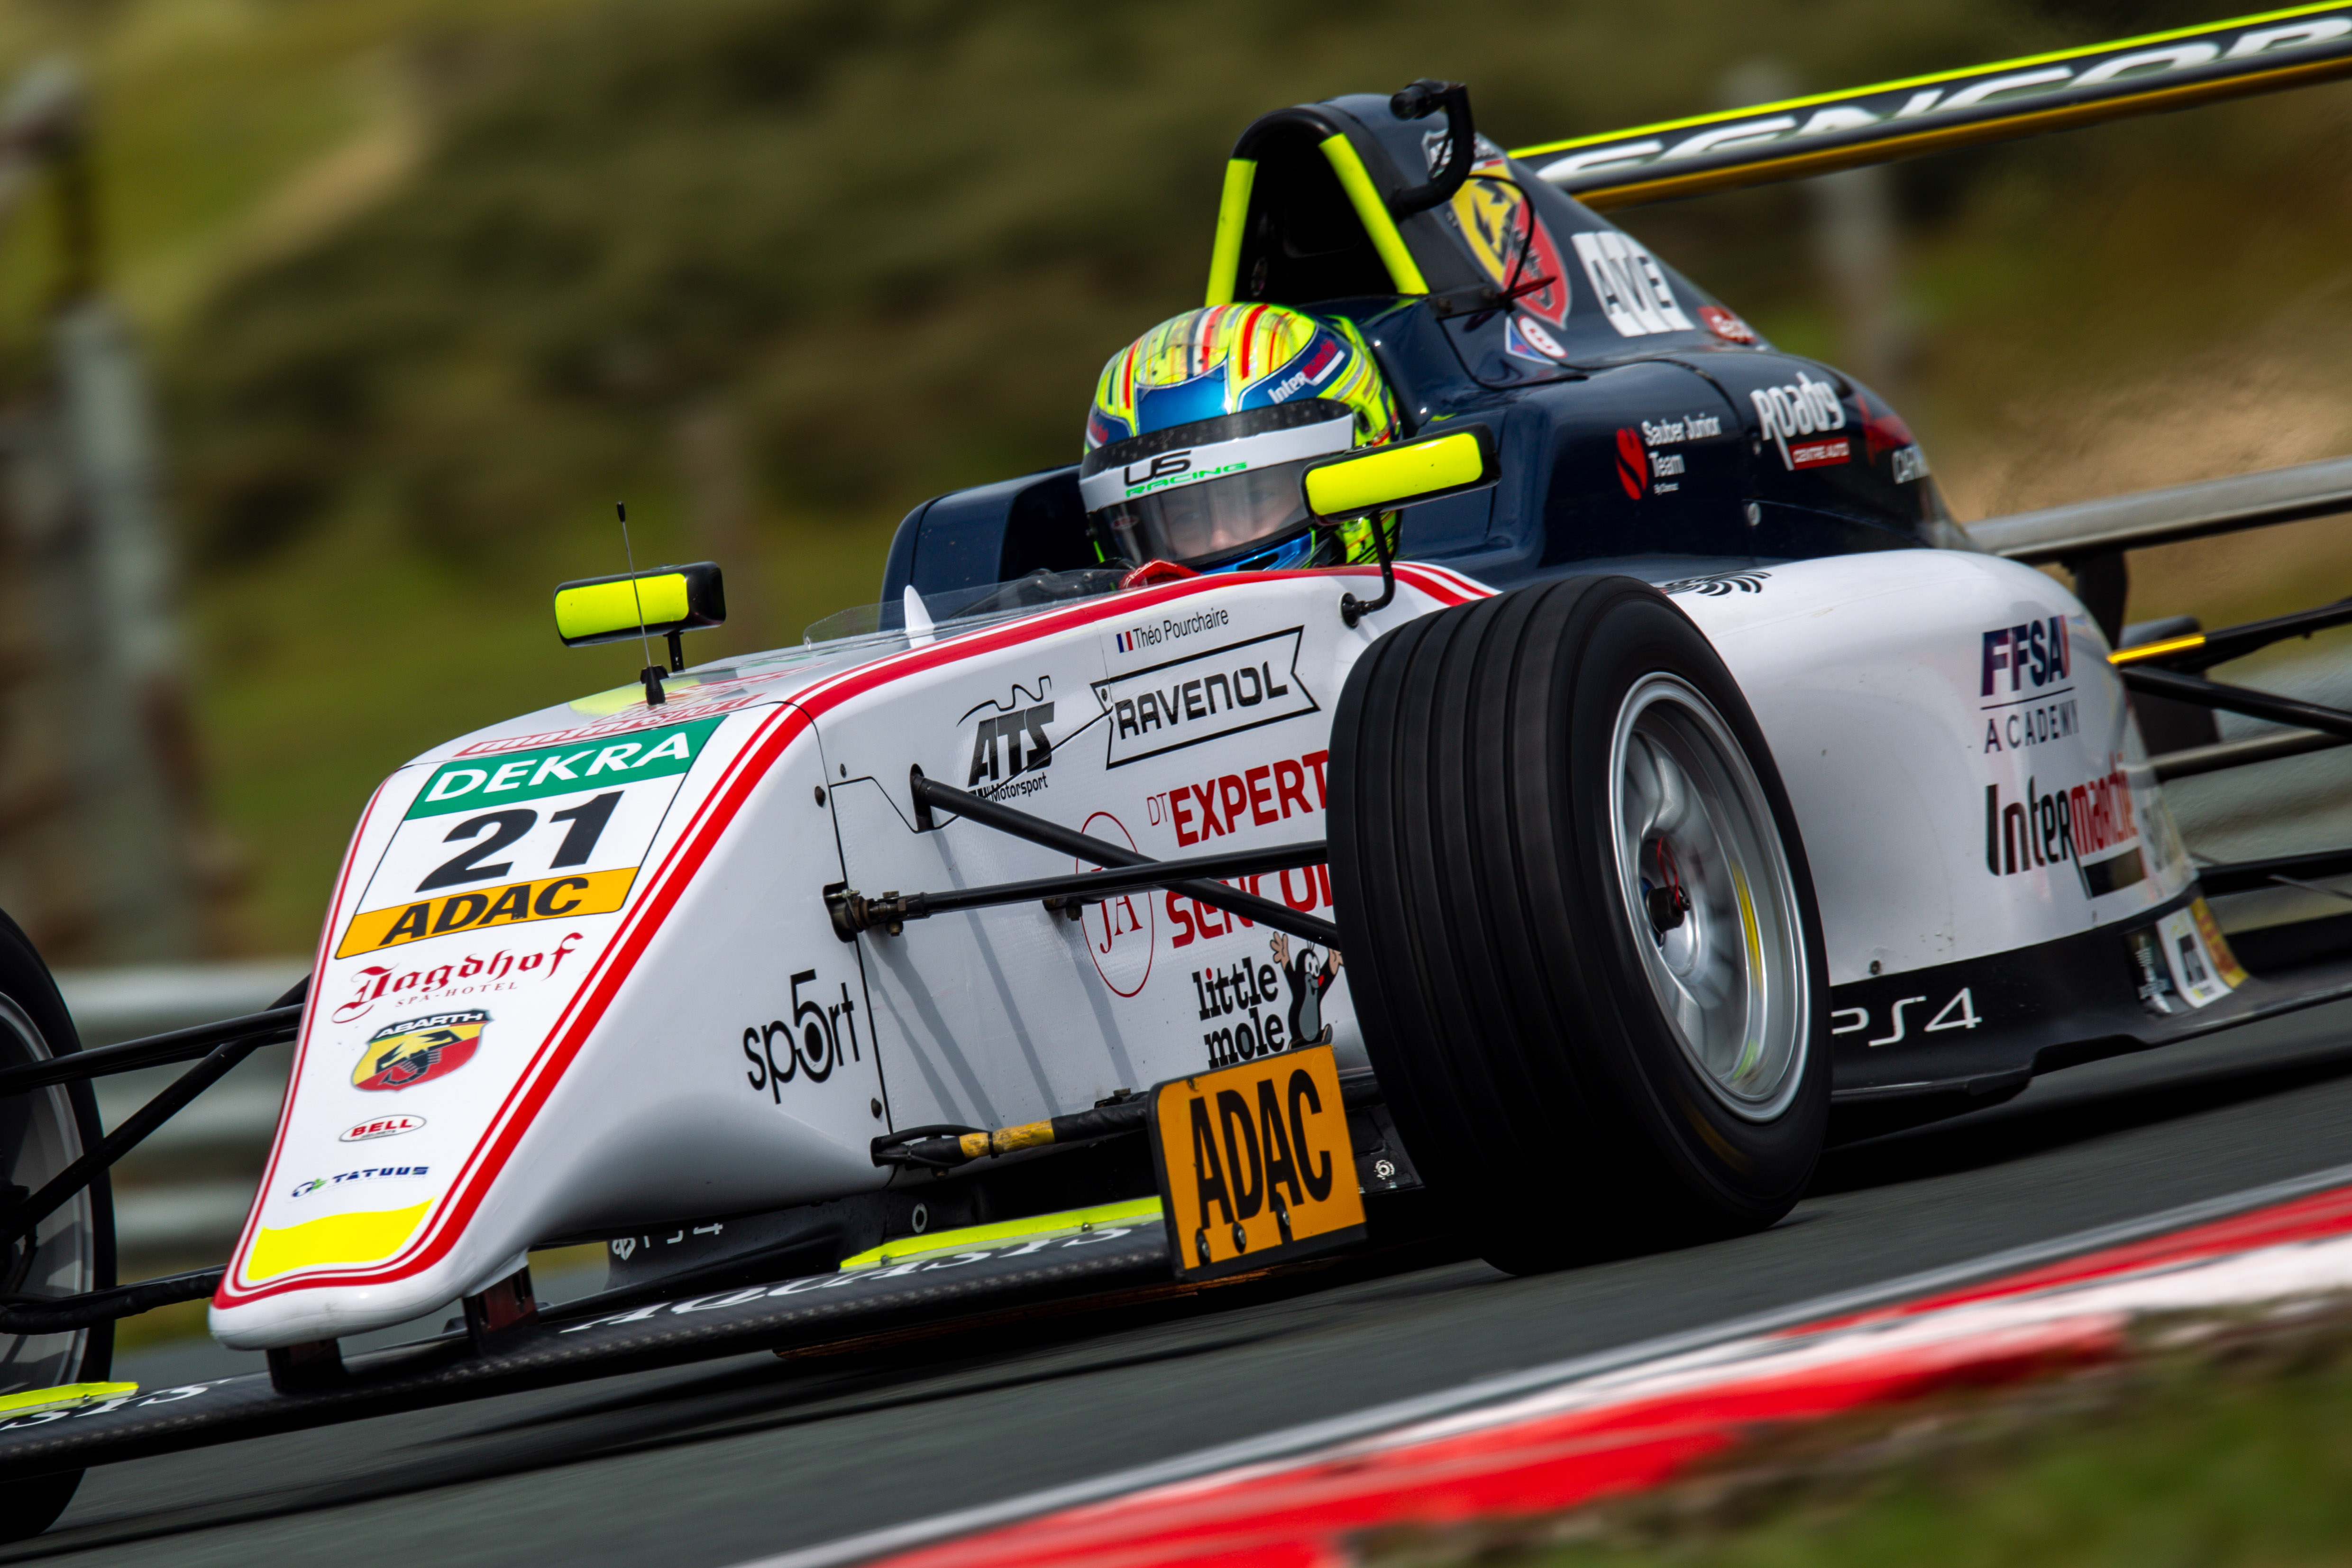 For me it was a good weekend. I can leave Zandvoort happy with the progress and points.